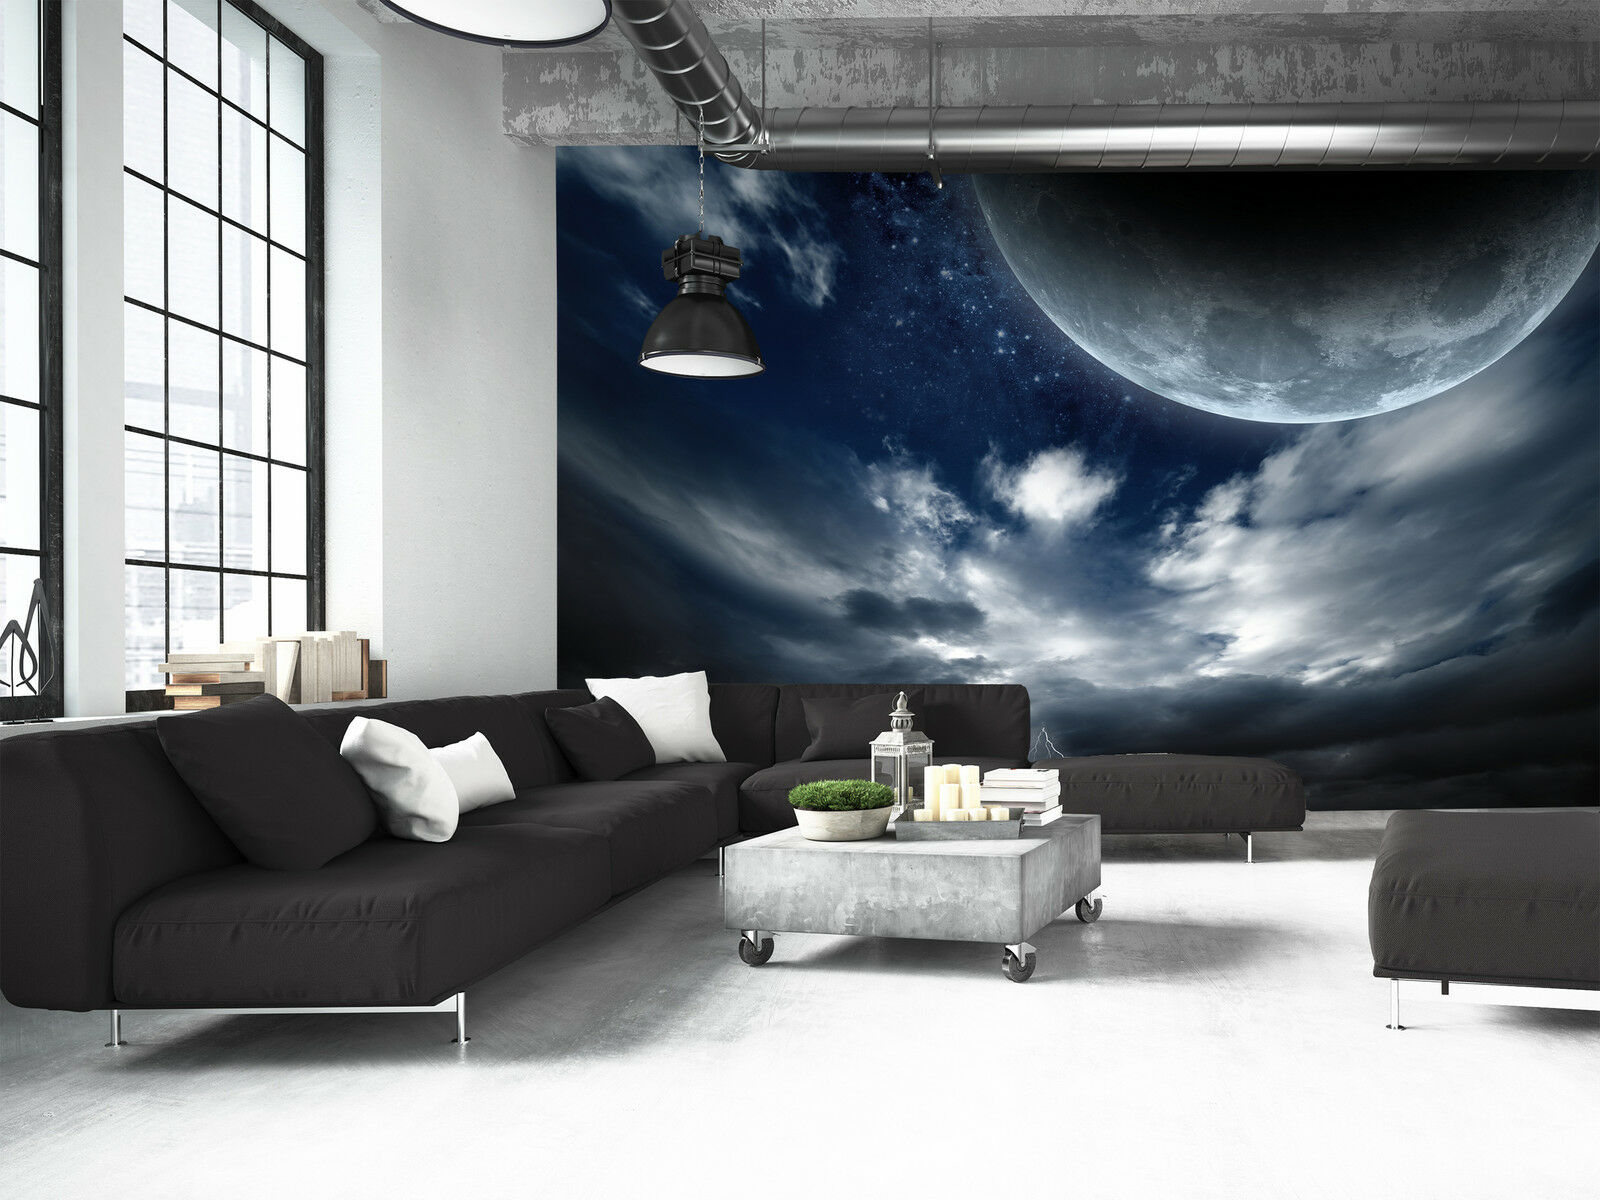 Fantastic Nigh Wall Mural Photo Wallpaper GIANT DECOR Paper Paper Paper Poster Free Paste a6da22